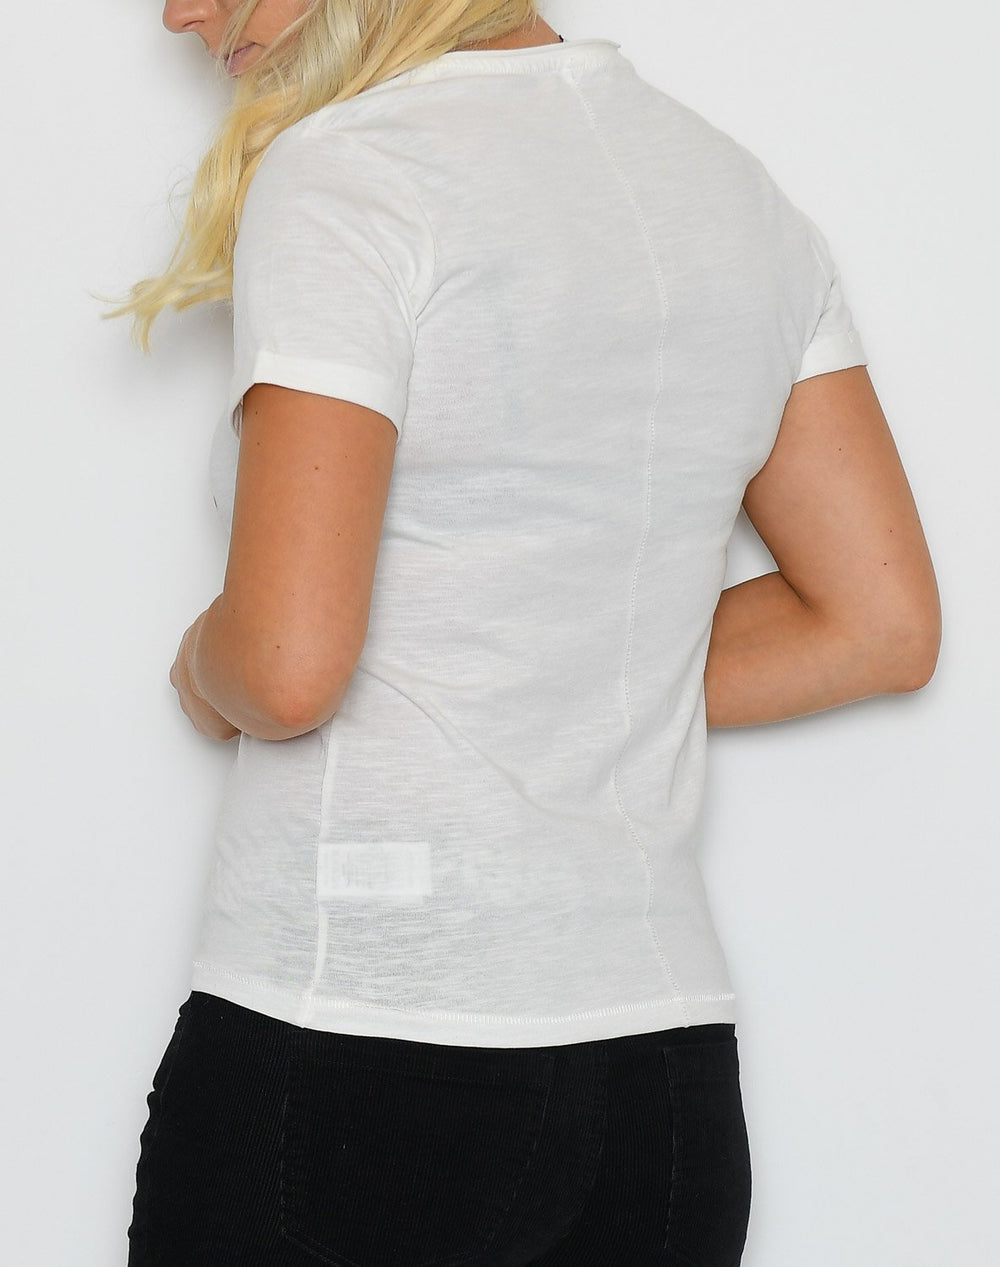 Soya Babette 6 t-shirt off white - Online-Mode